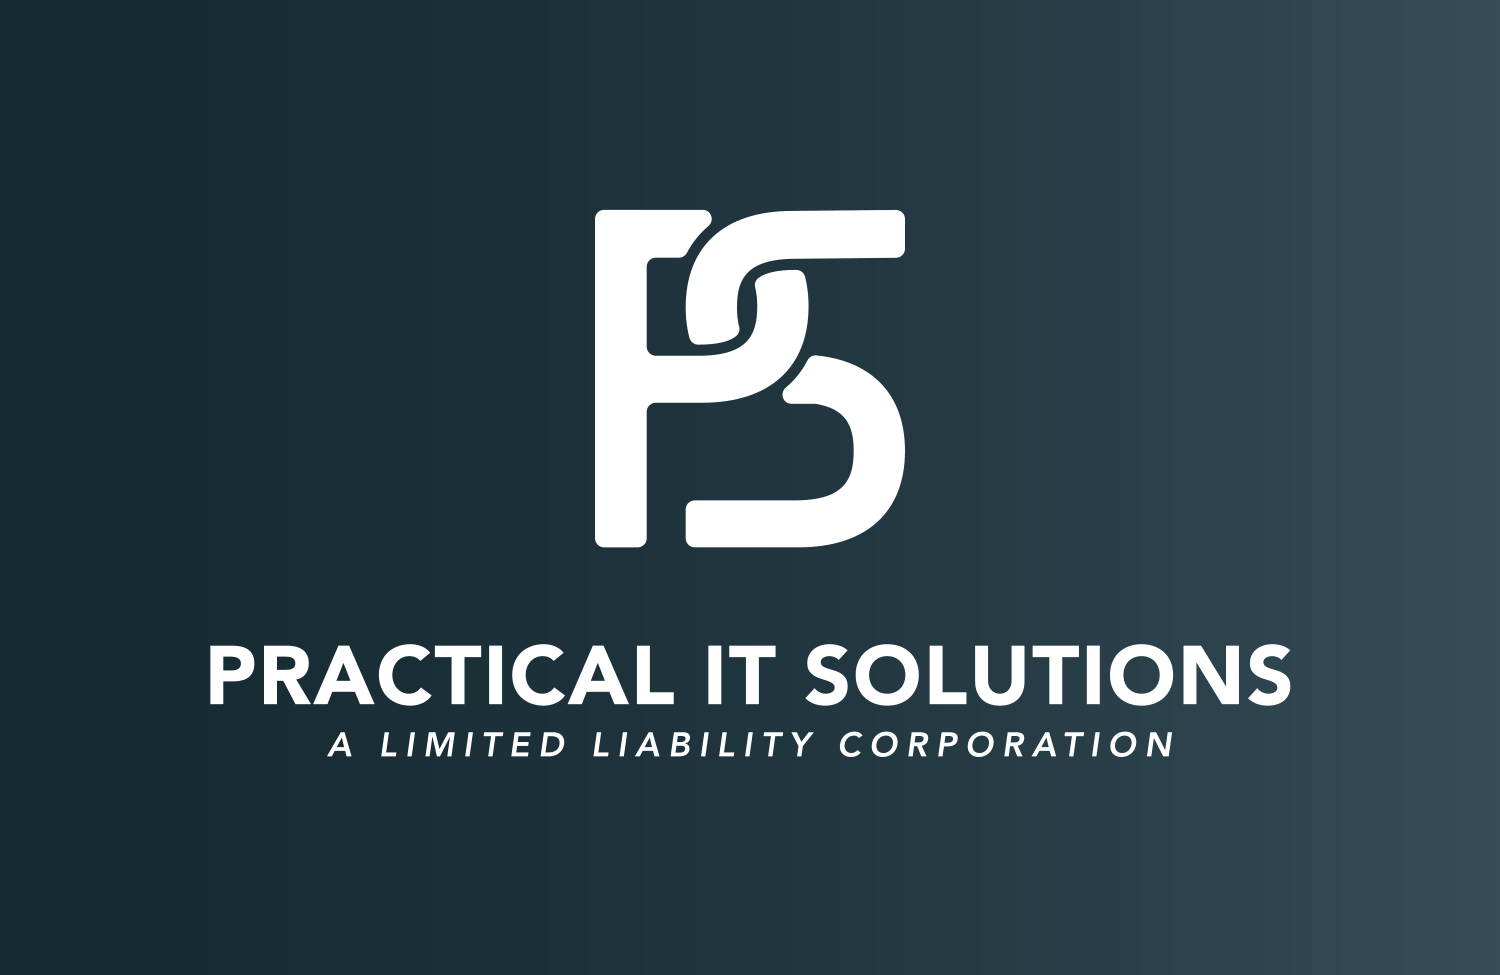 Practical IT Solutions logo